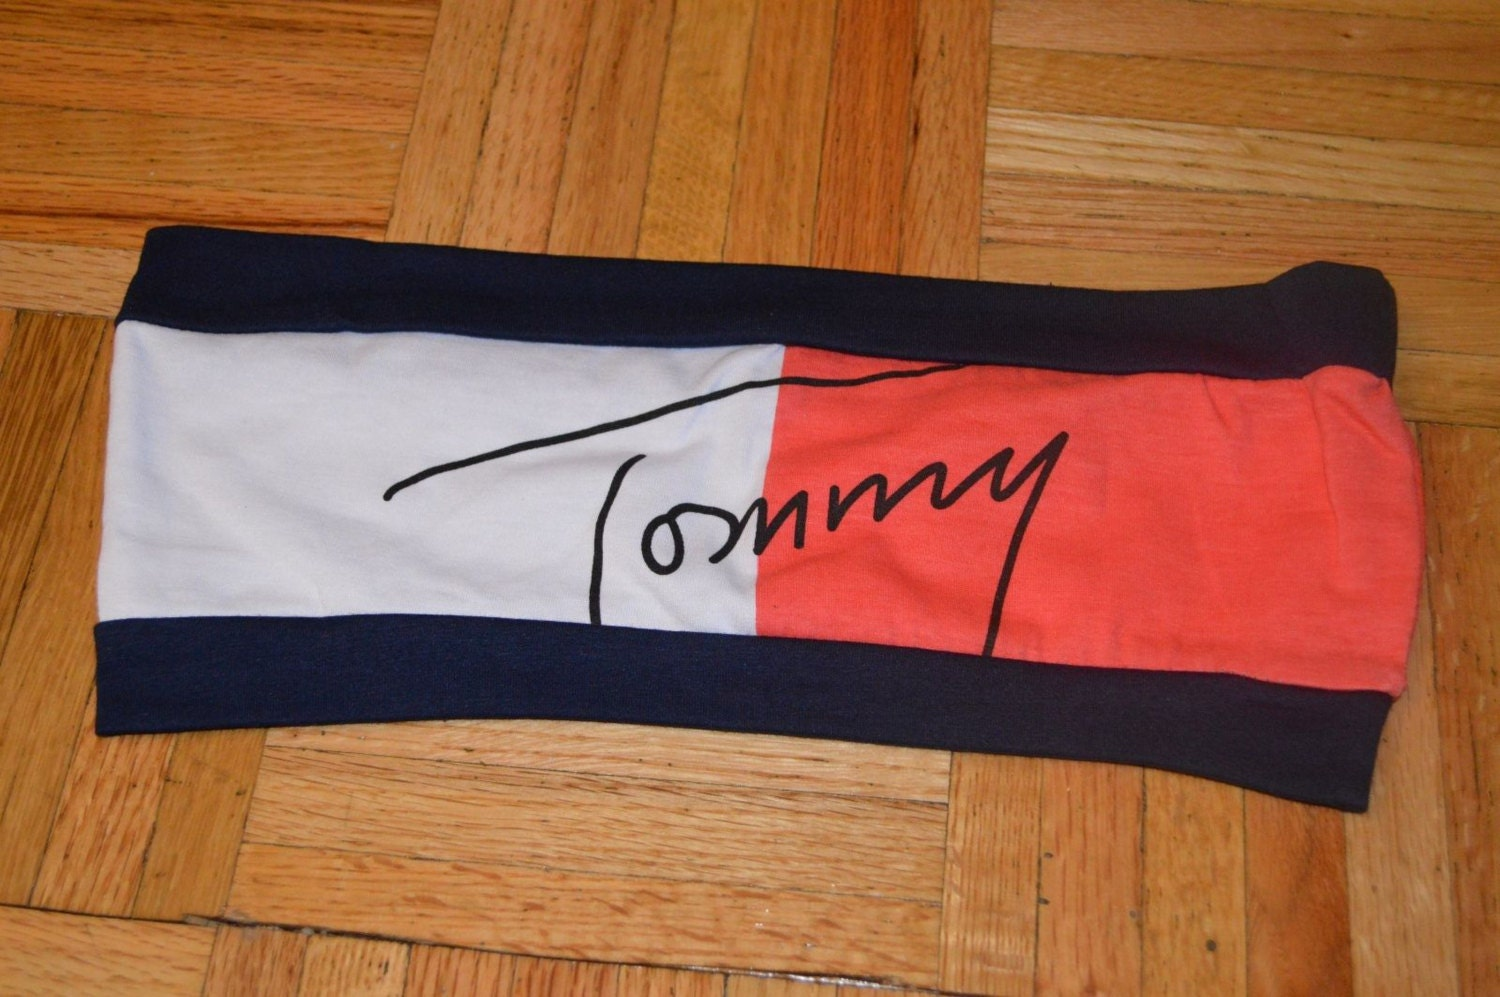 8ca58952758e7 NEW NO TAGS VINTAGE VTG TOMMY HILFIGER WOMENS LARGE SPELL OUT BANDEAU TUBE  TOP BRA RED WHITE BLUE on The Hunt